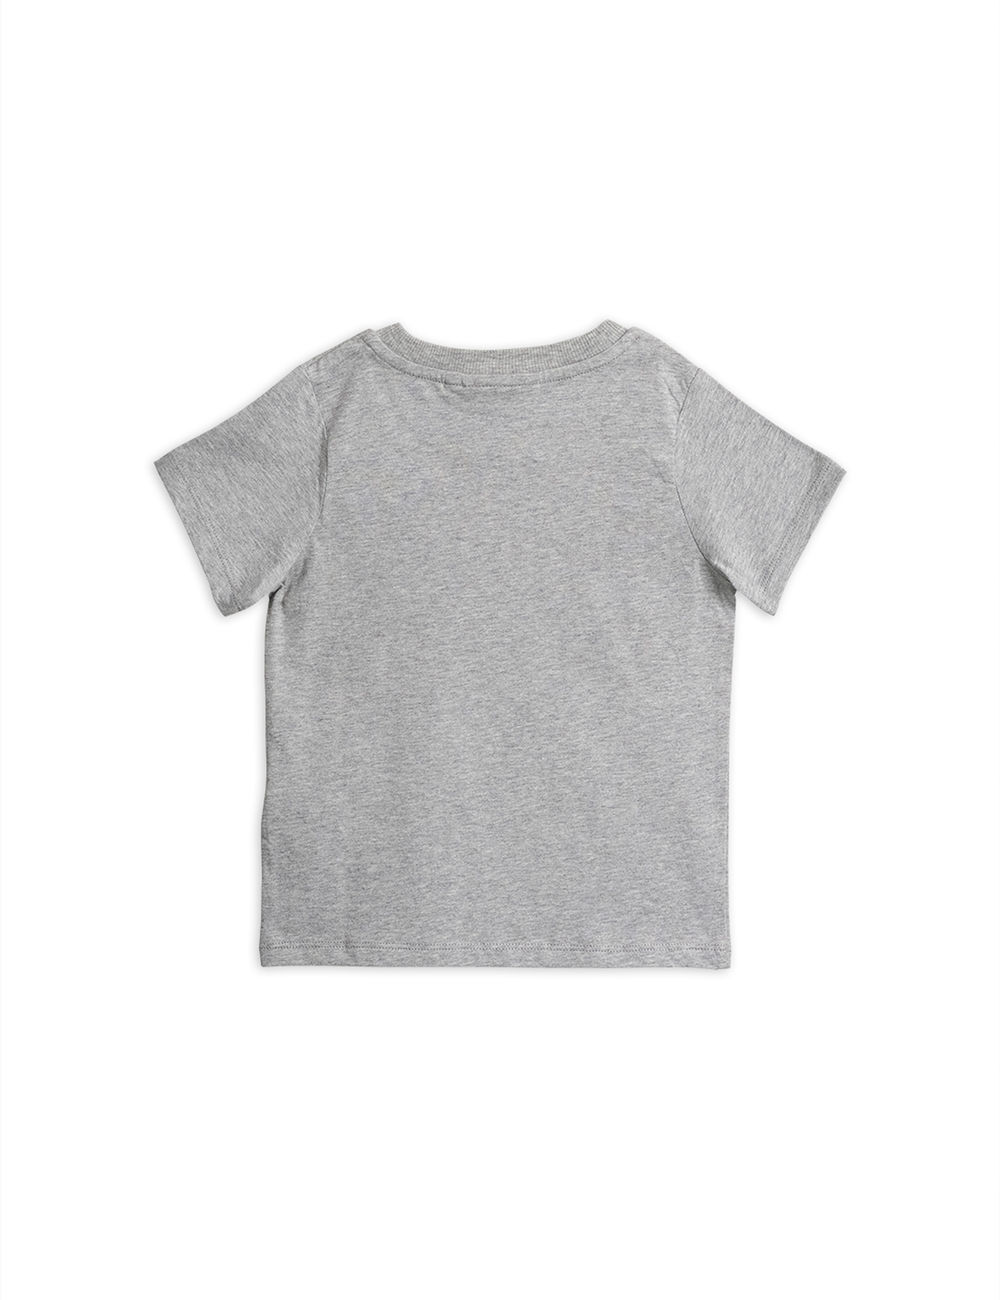 MINI RODINI POP CORN SS TEE, GREY MELANGE